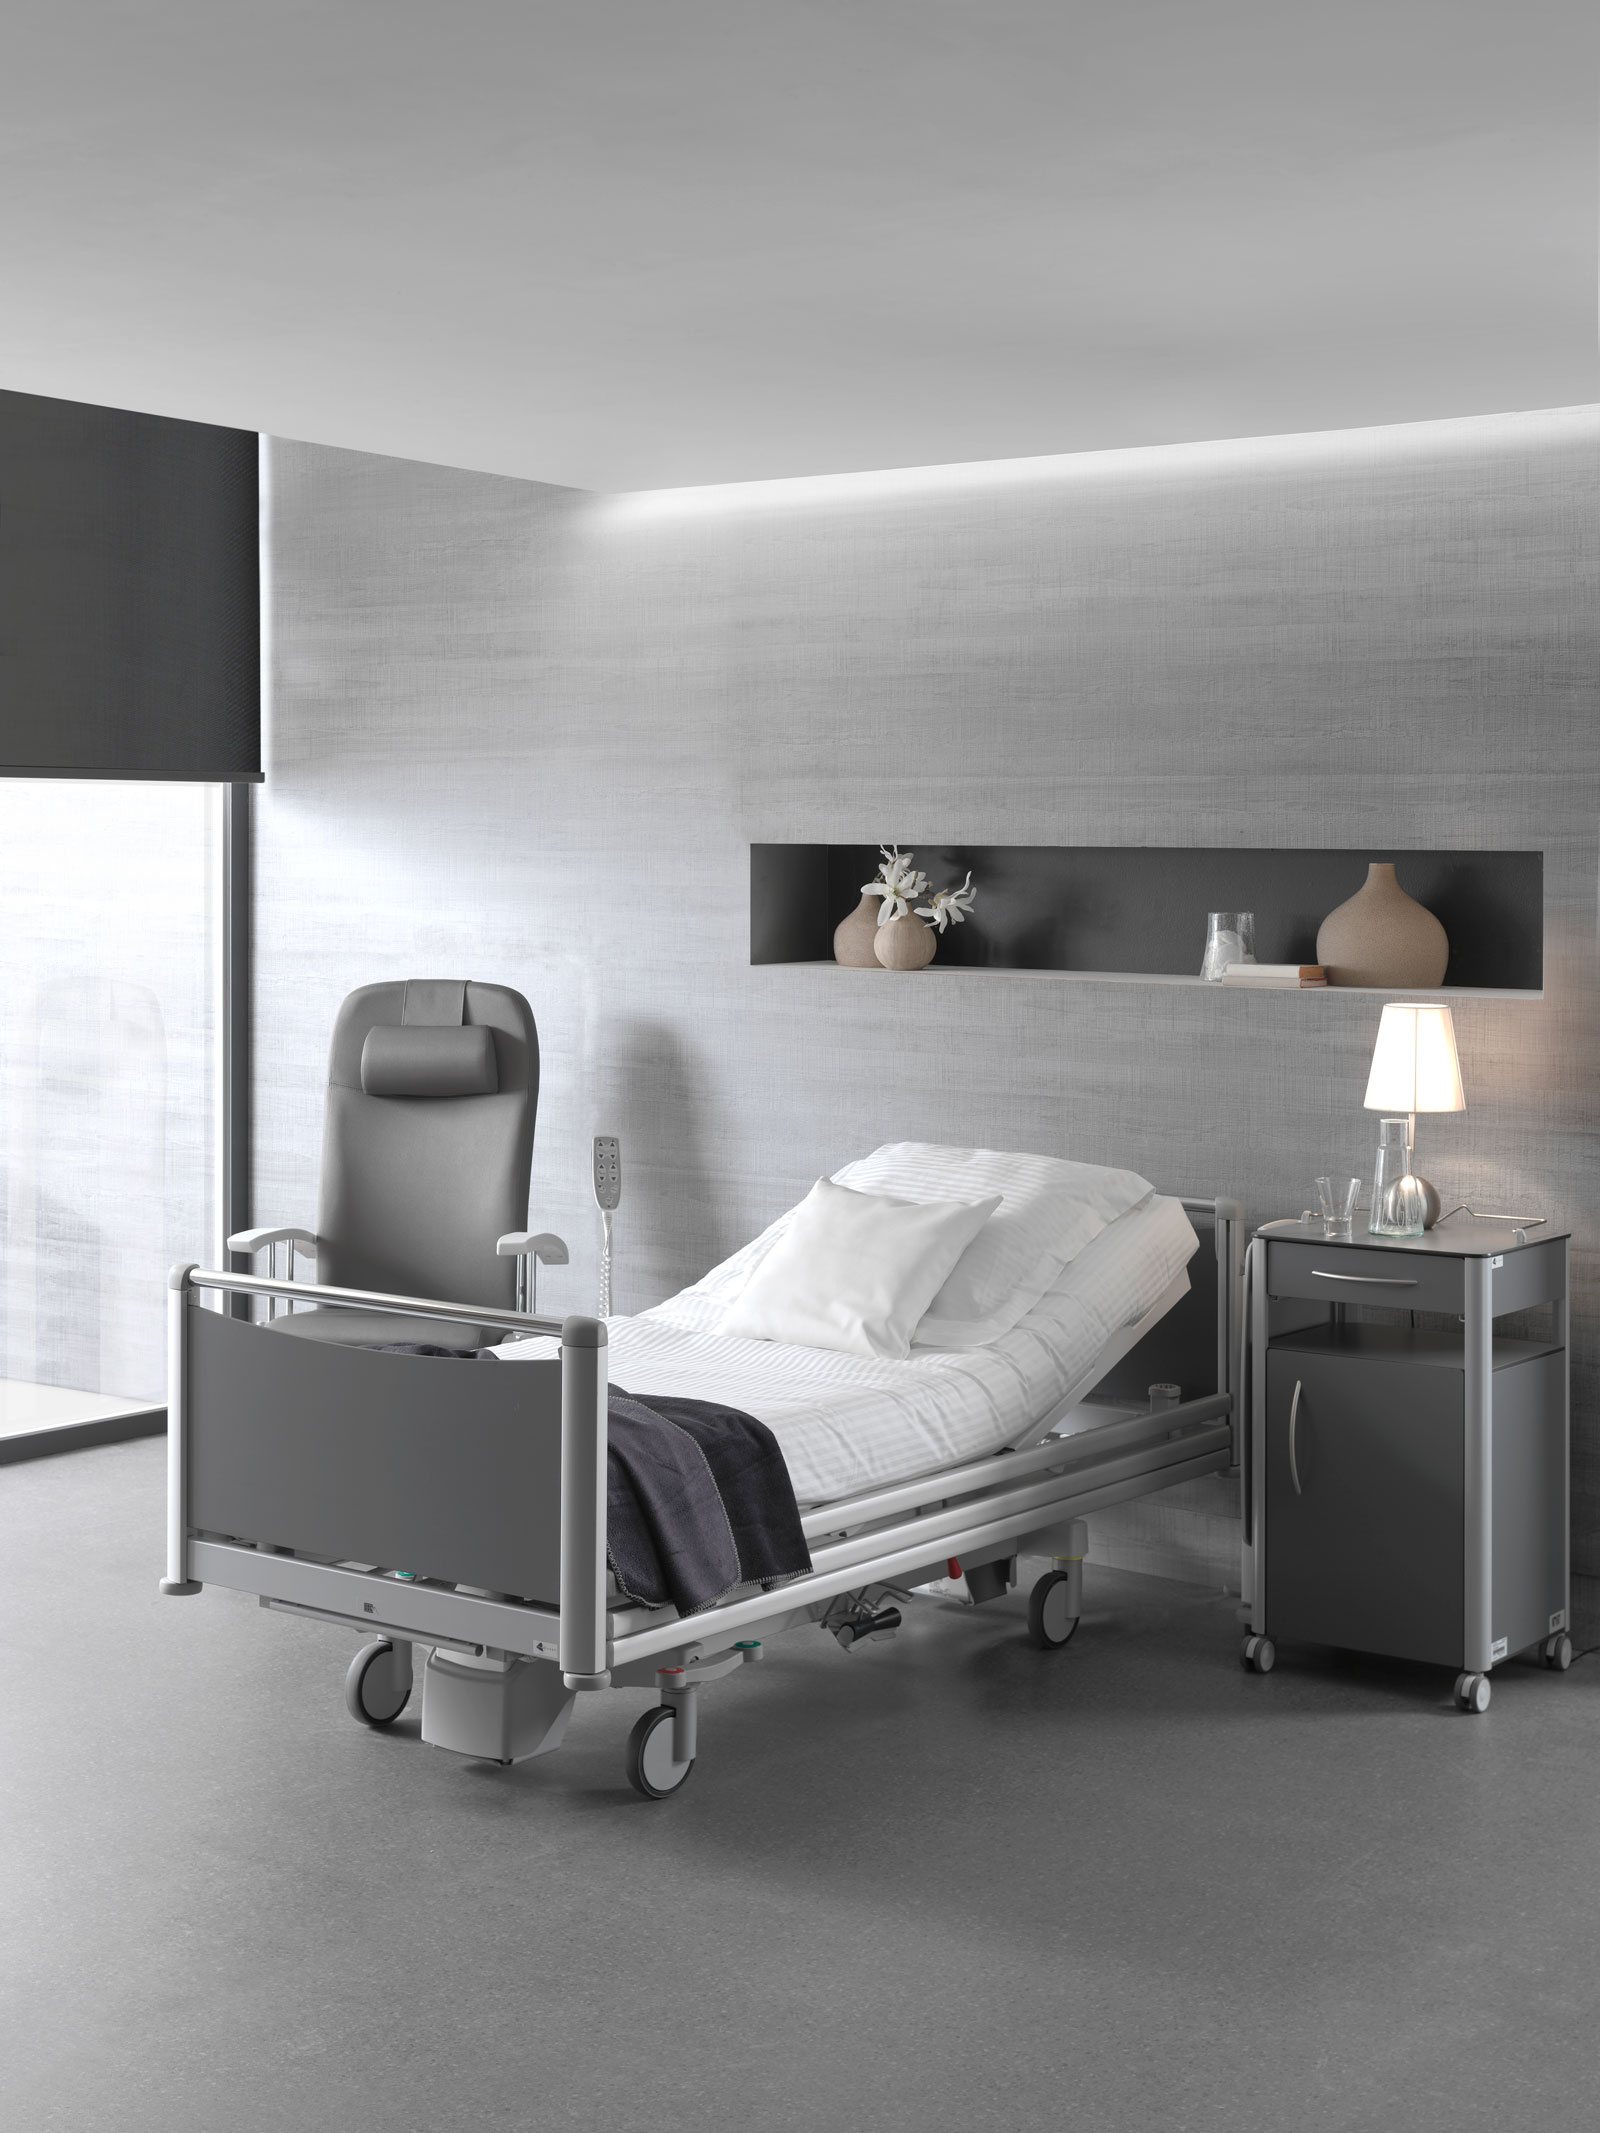 Aron Hospital Bed